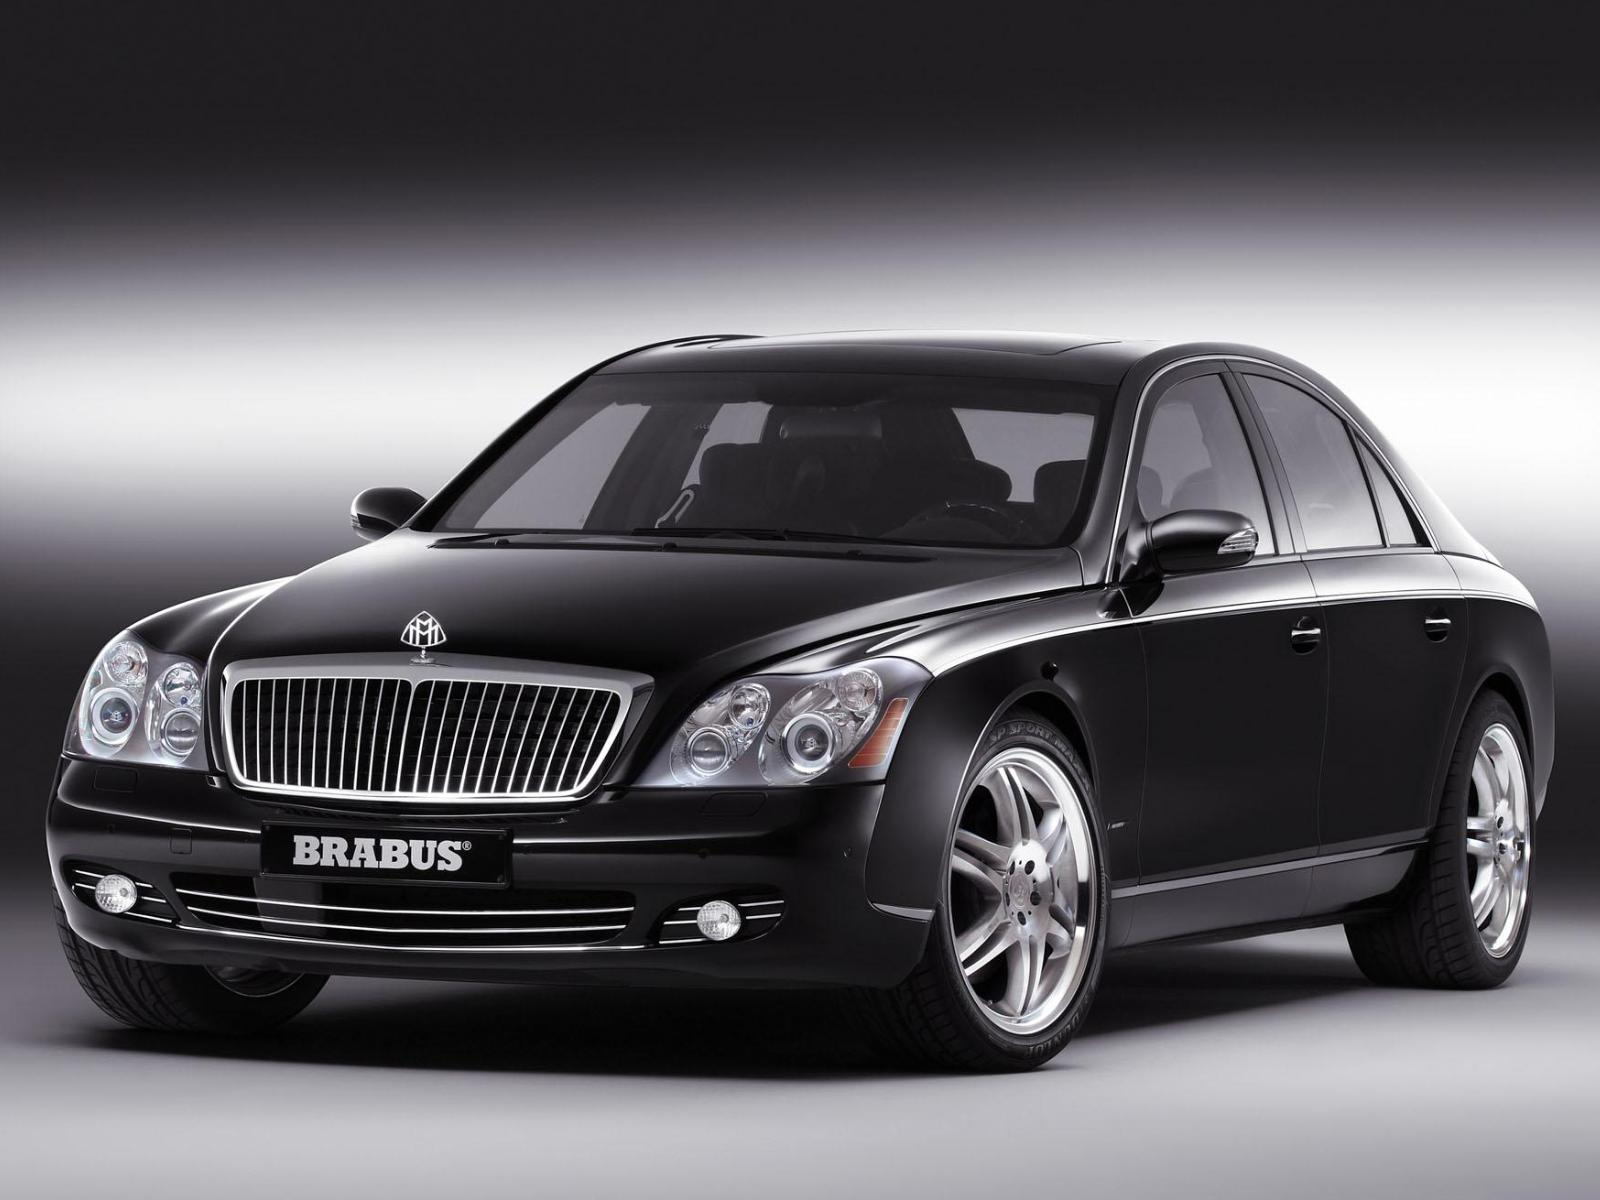 Brabus Maybach 57 photo 13487